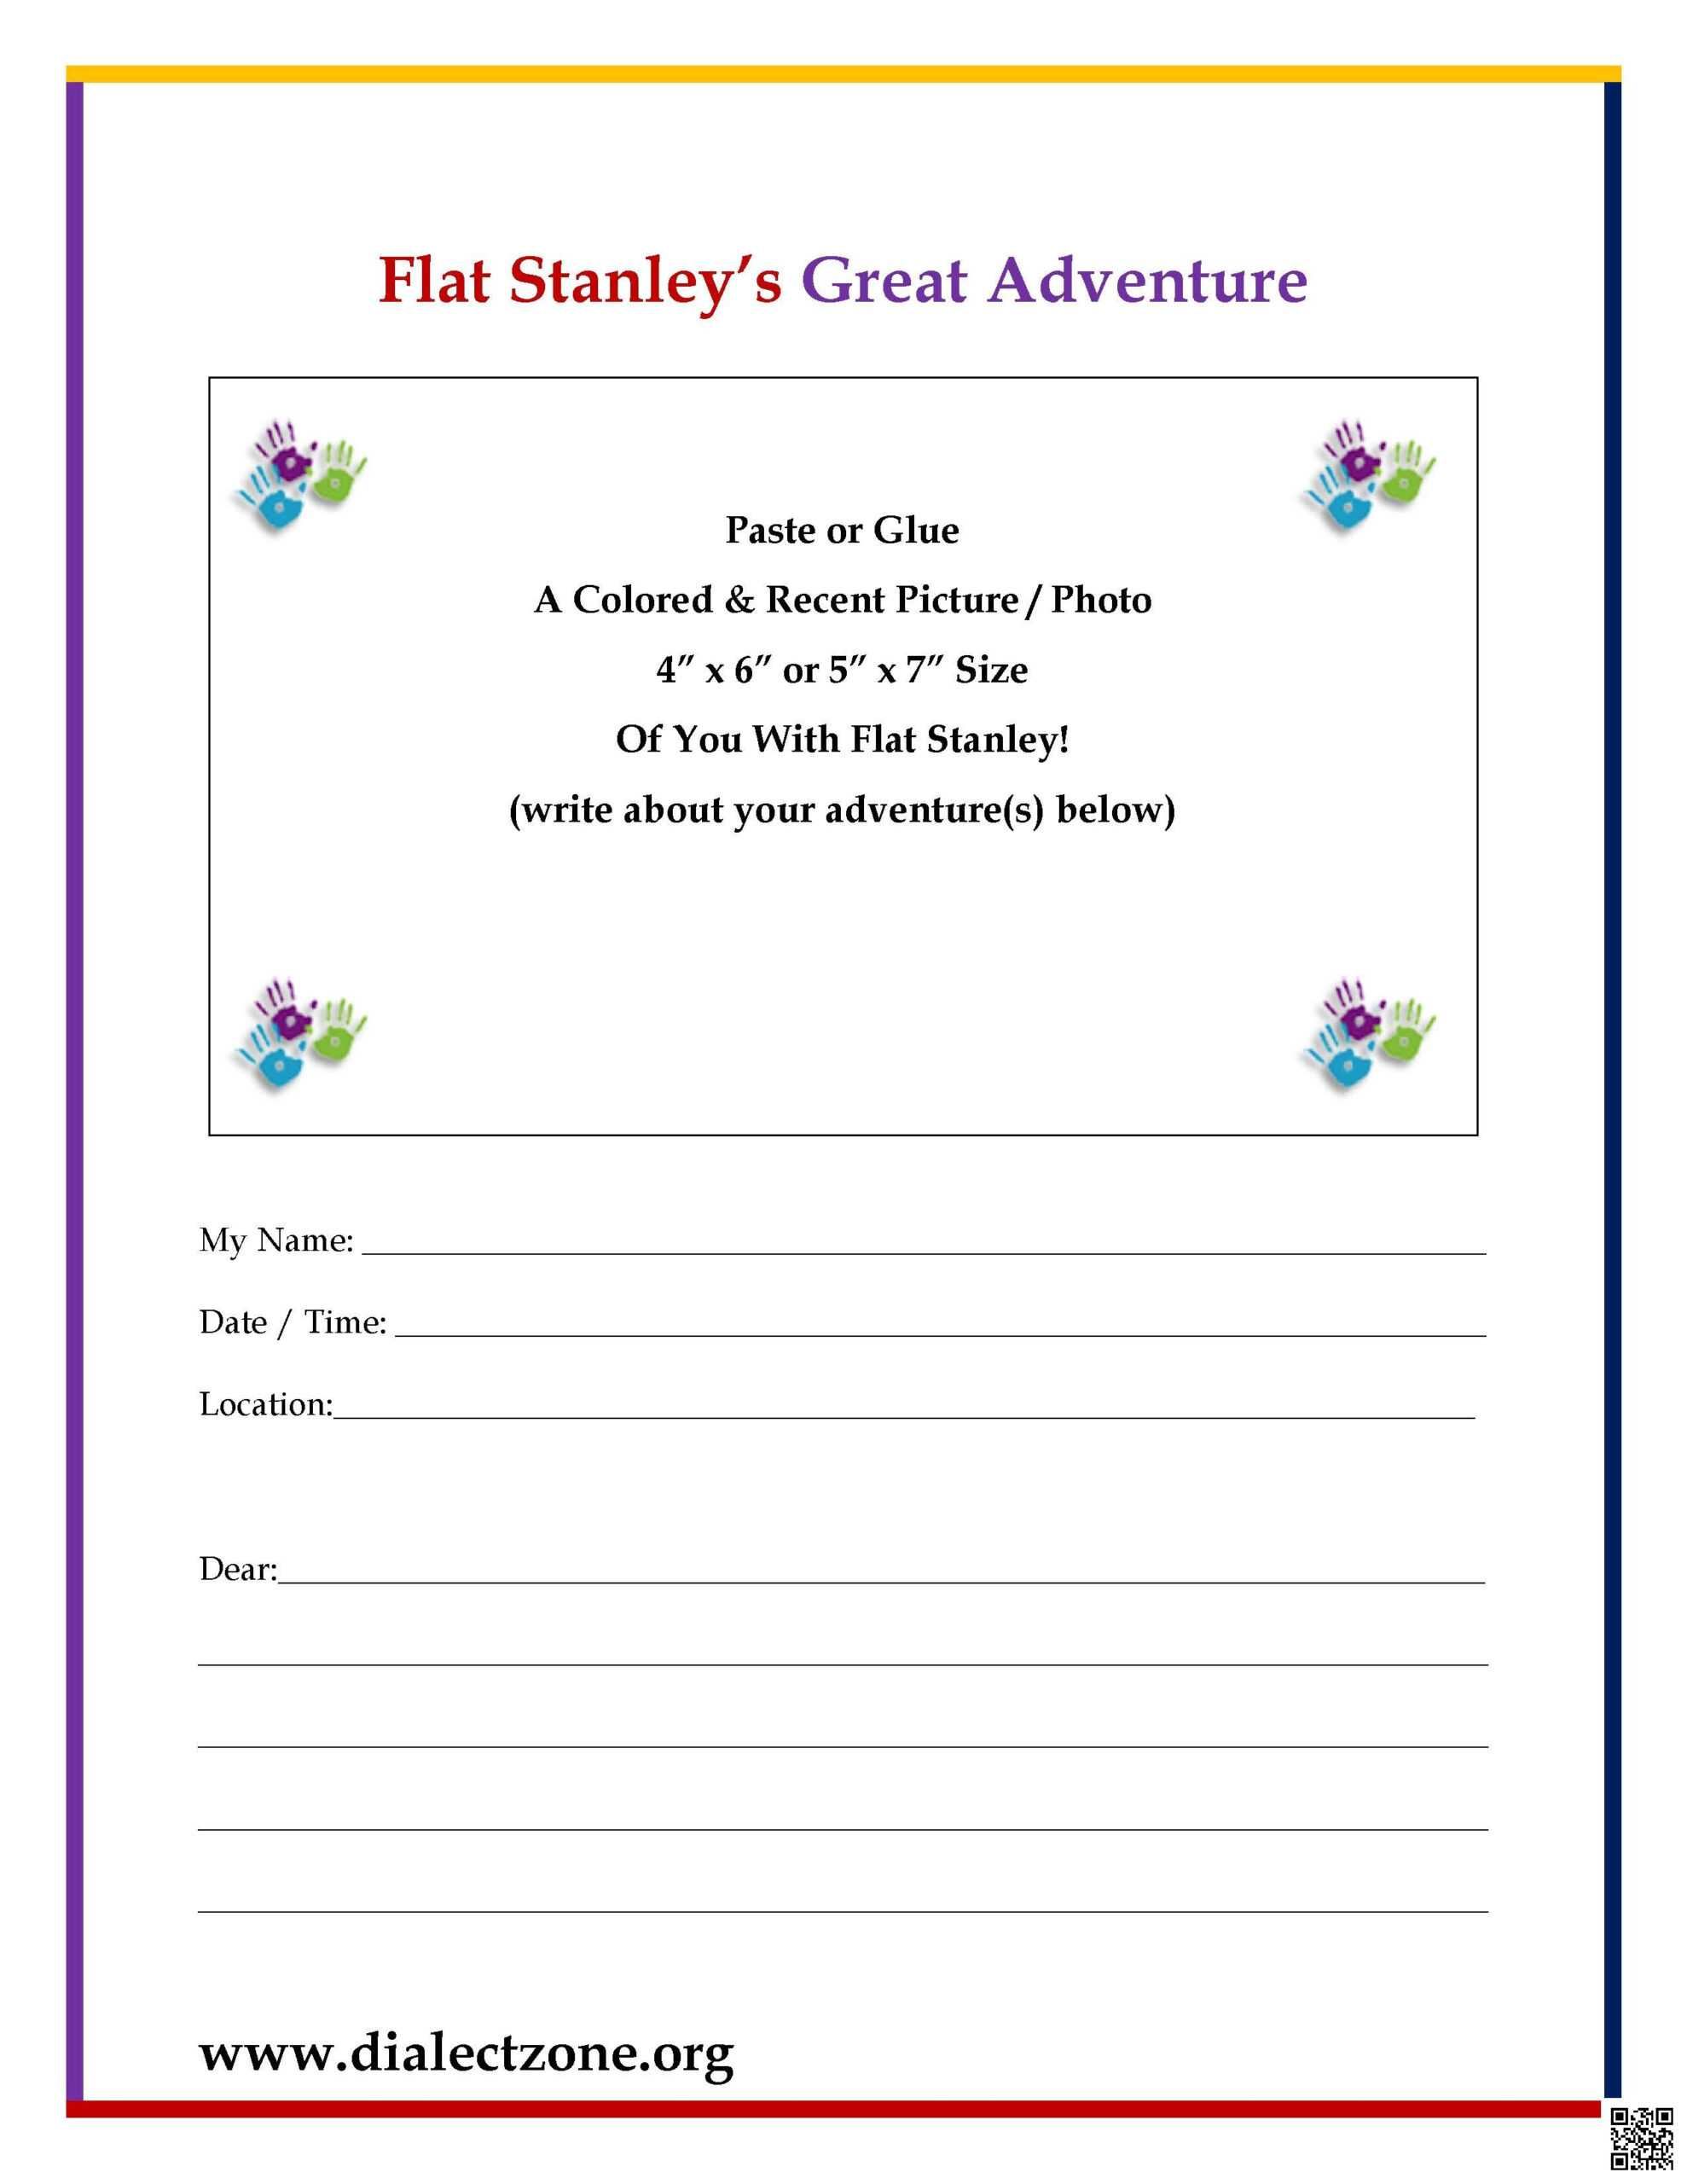 Flat Stanley Great Adventure Letter | Dialect Zone International With Flat Stanley Letter Template